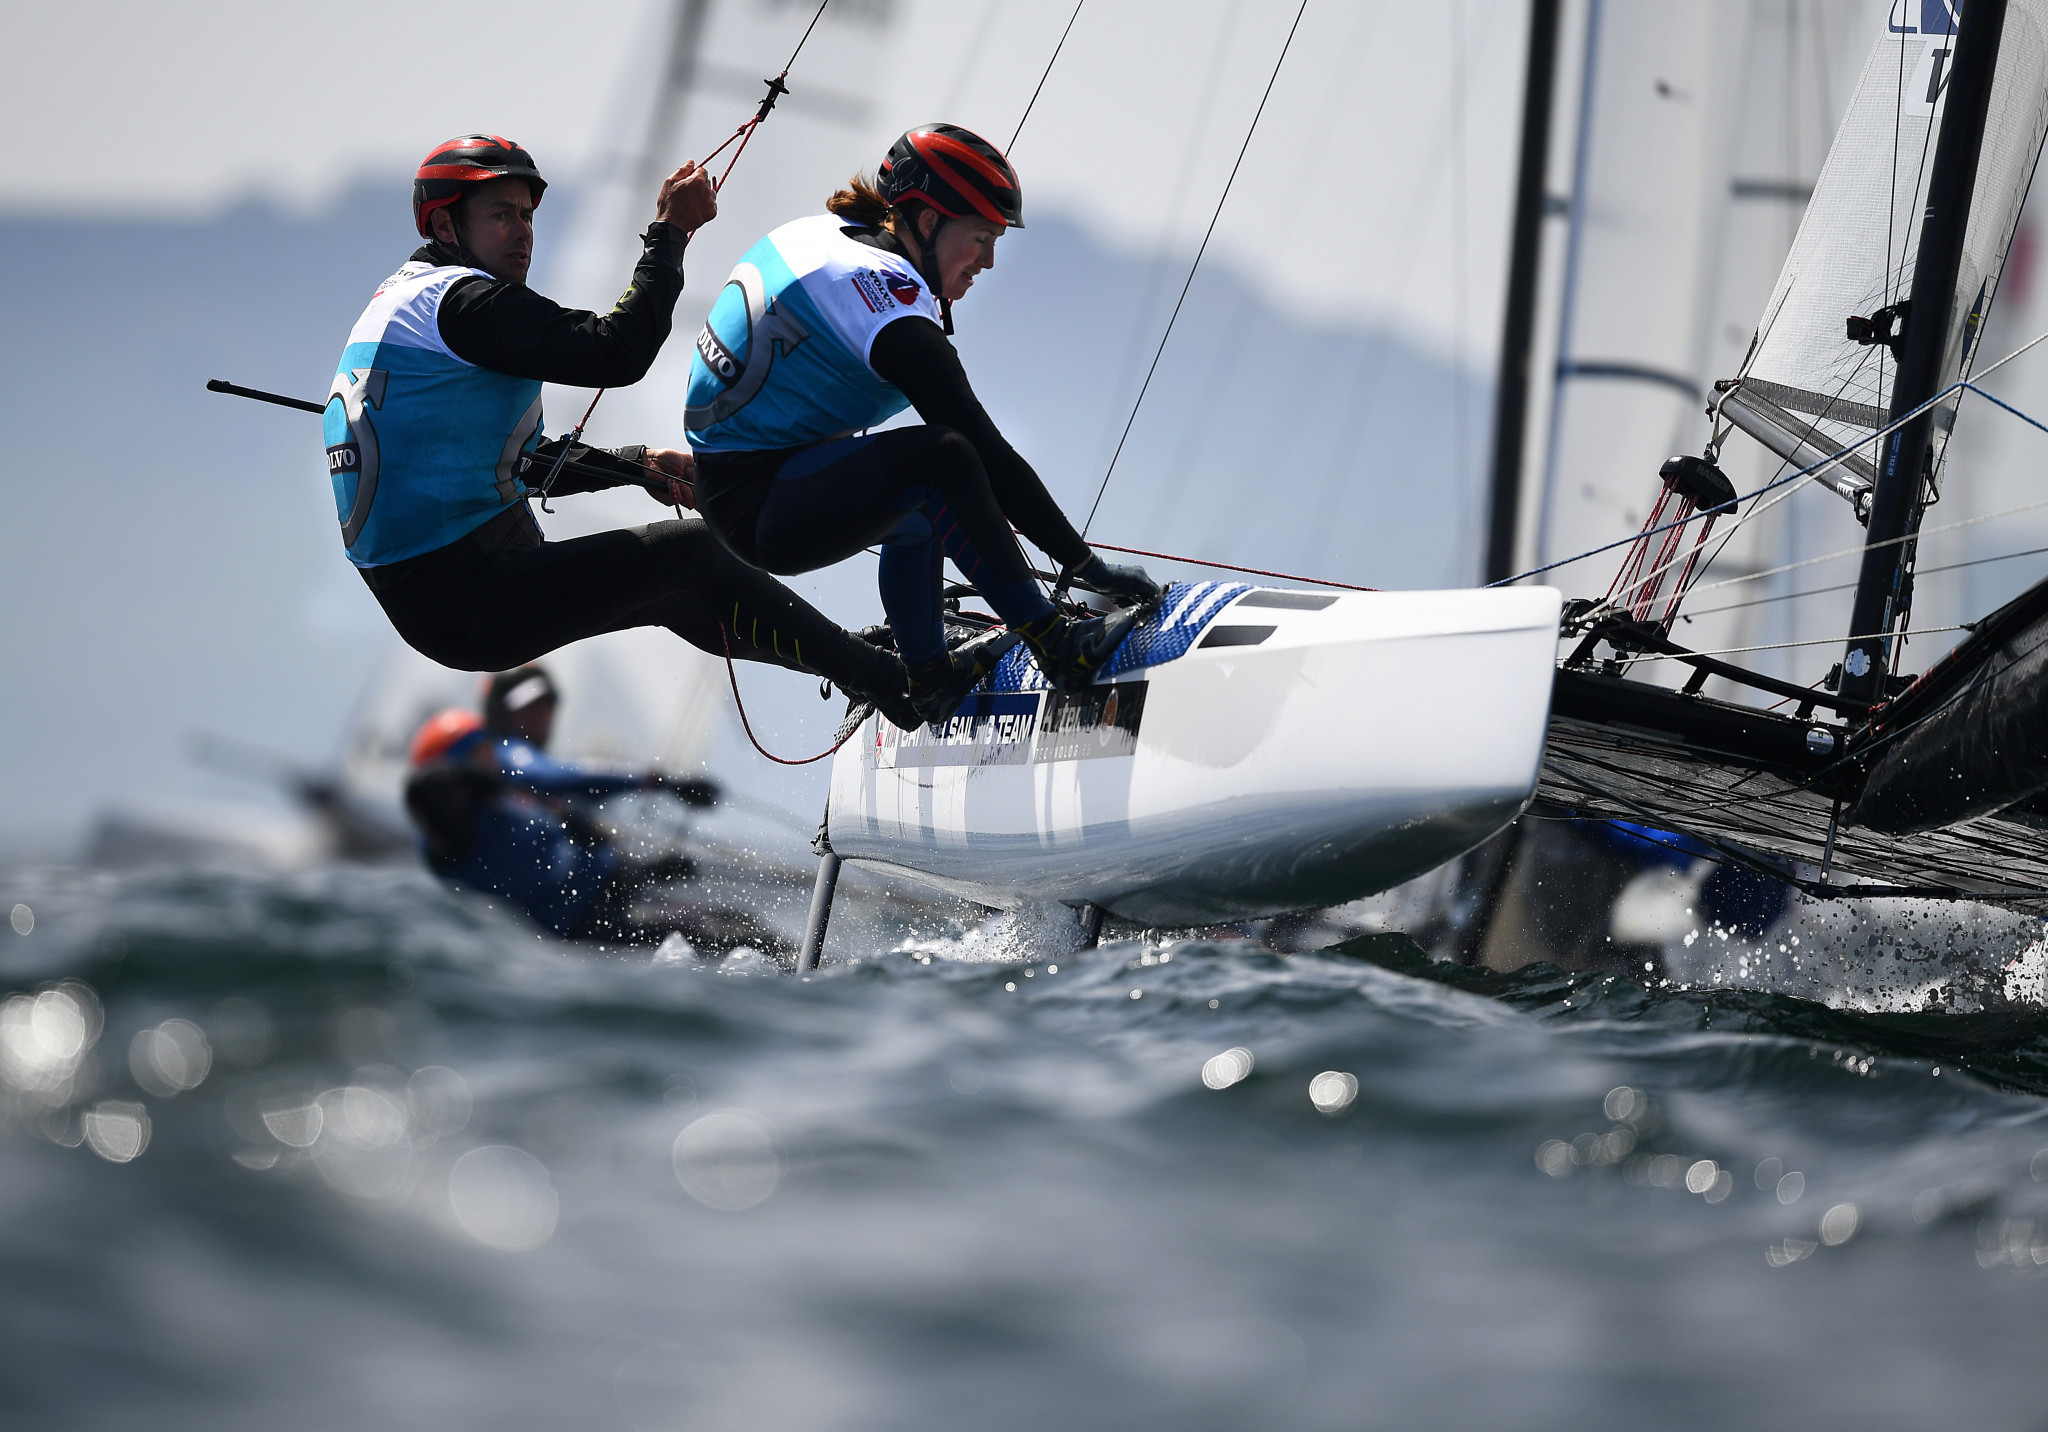 Great Britain's John Gimson and Anna Burnet have taken the lead in the Nacra 17 ©Getty Images